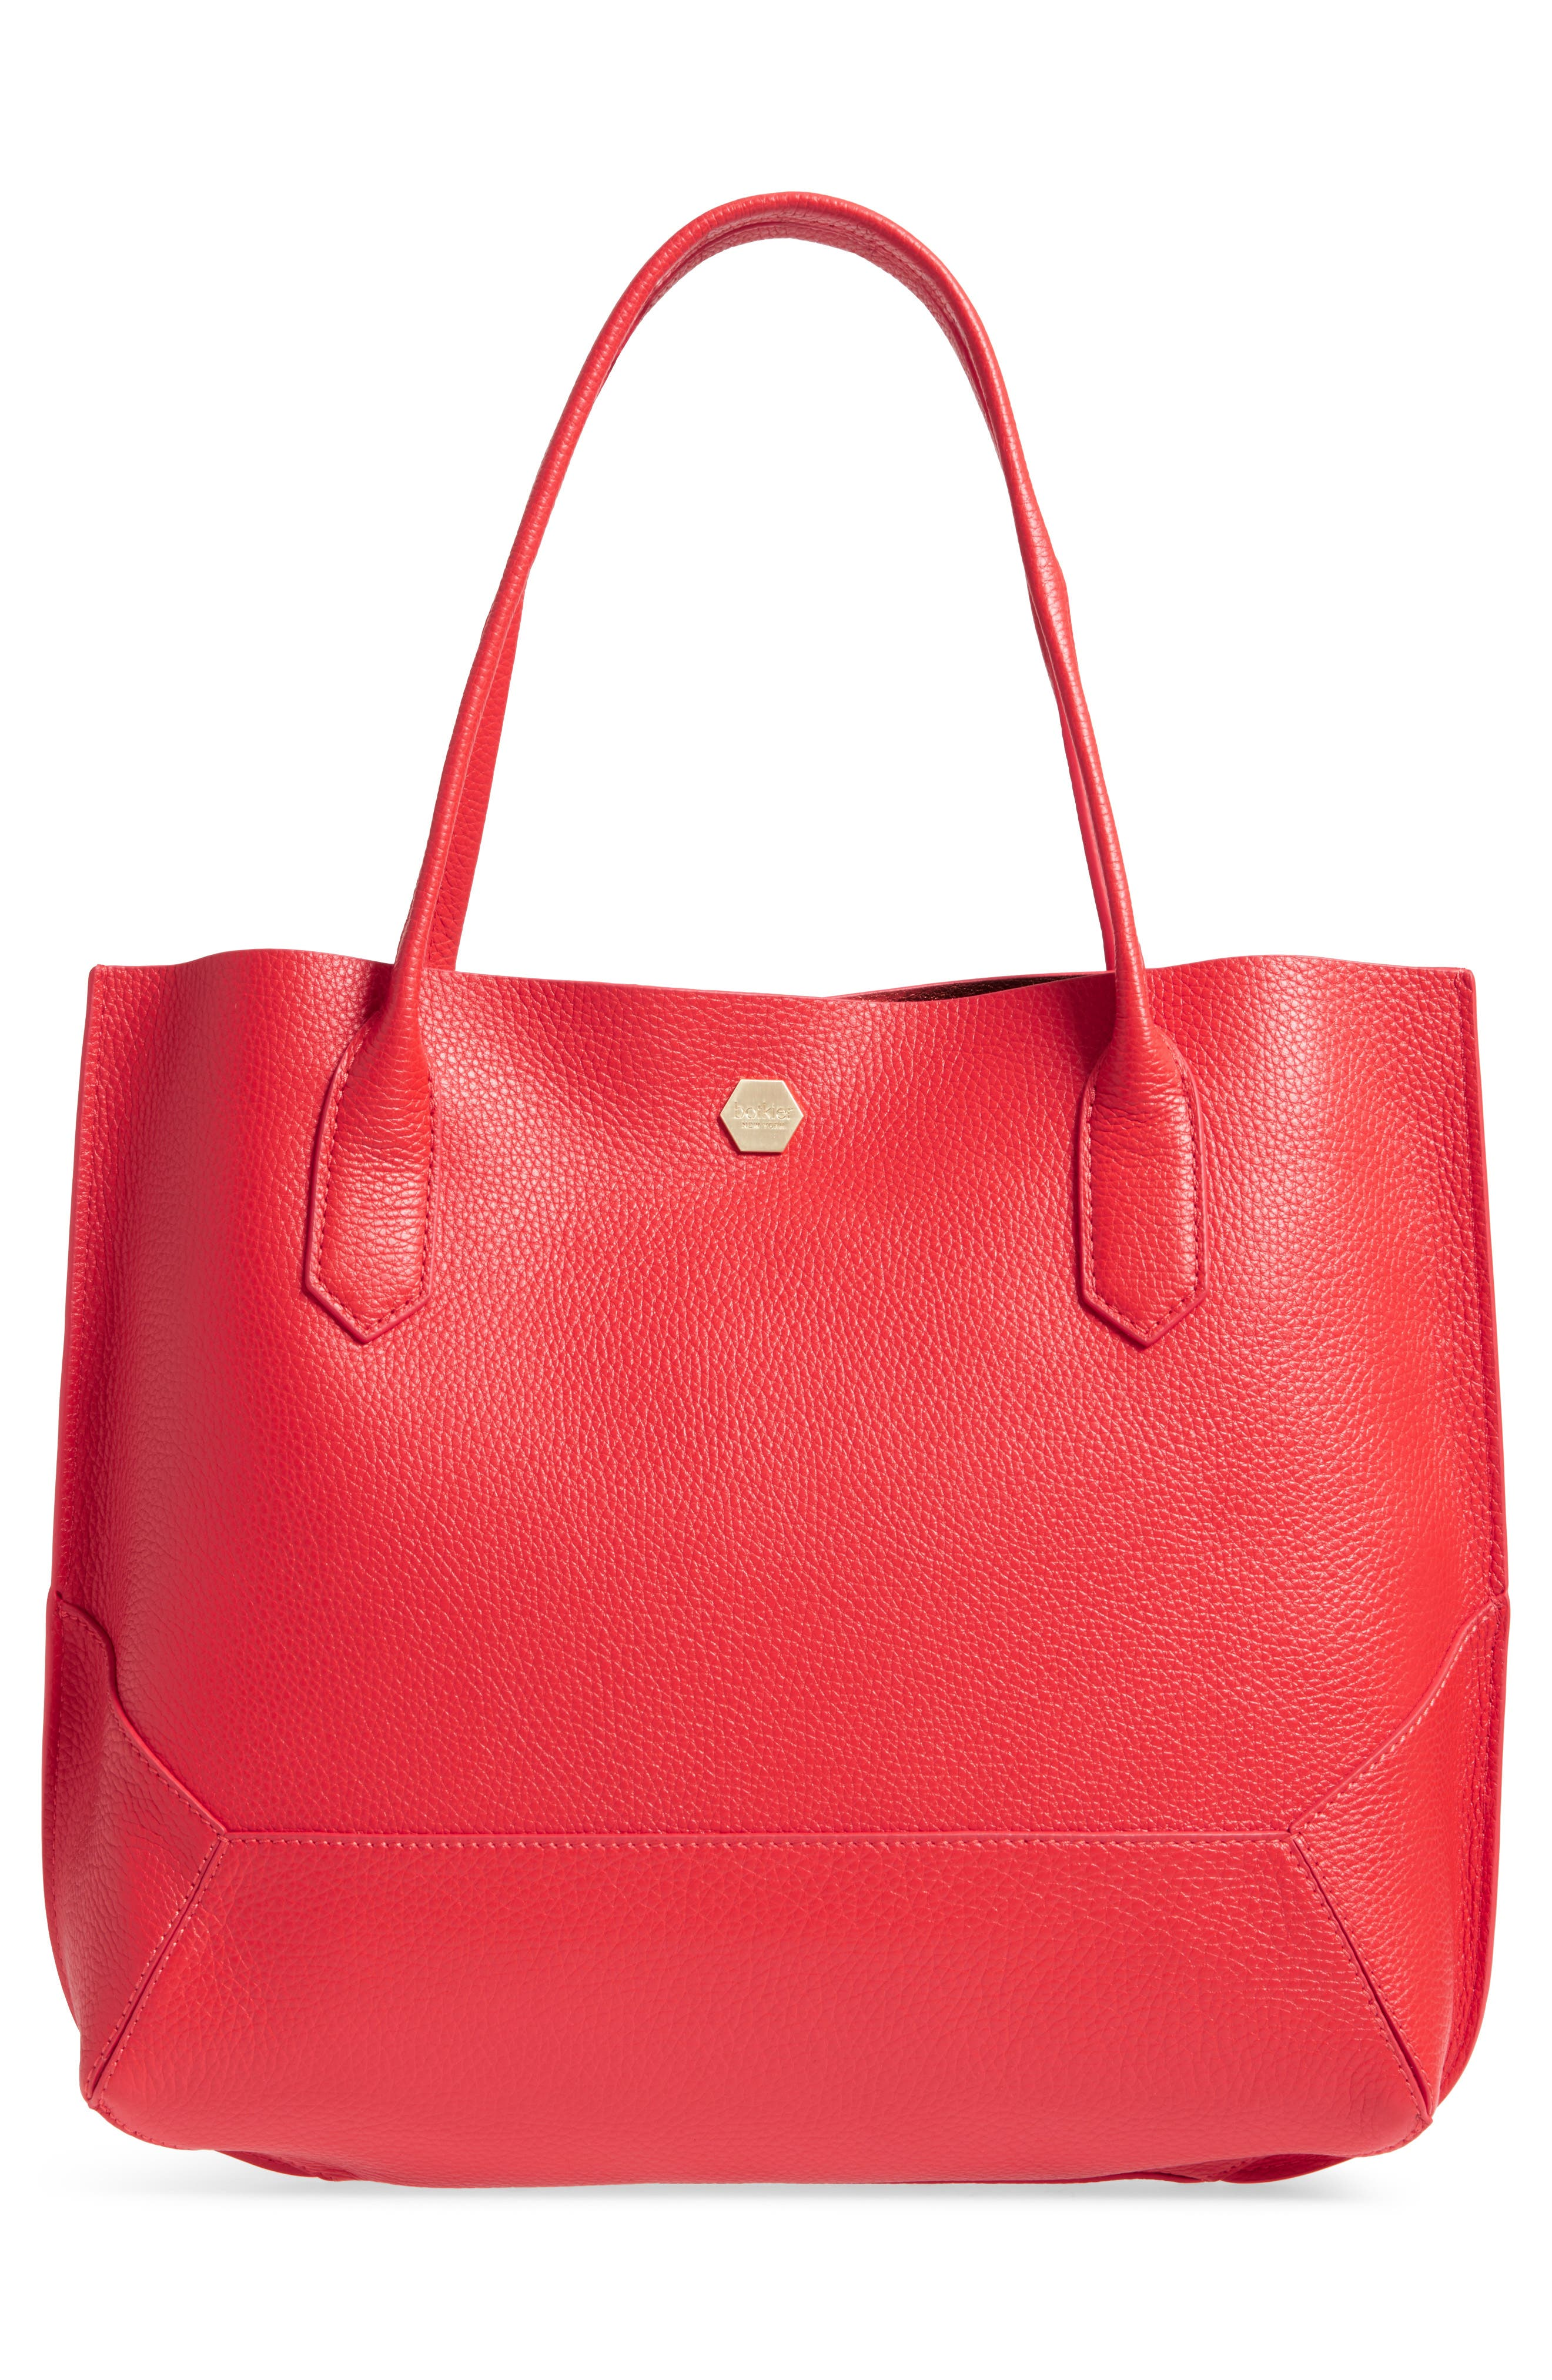 Waverly Leather Tote,                             Alternate thumbnail 25, color,